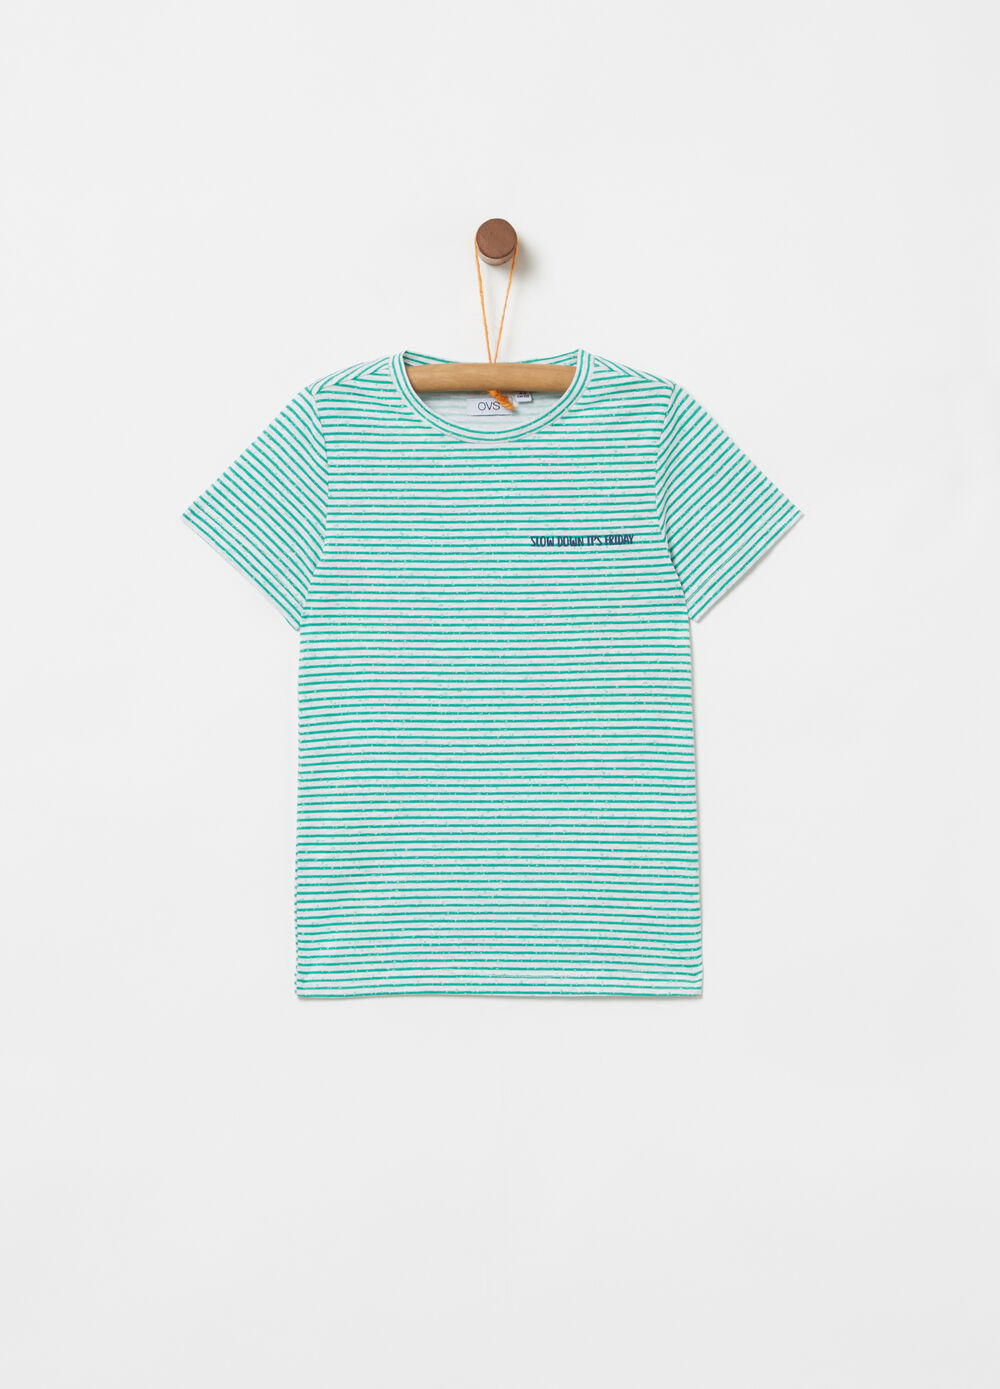 T-shirt with printed lettering, stripes and patches